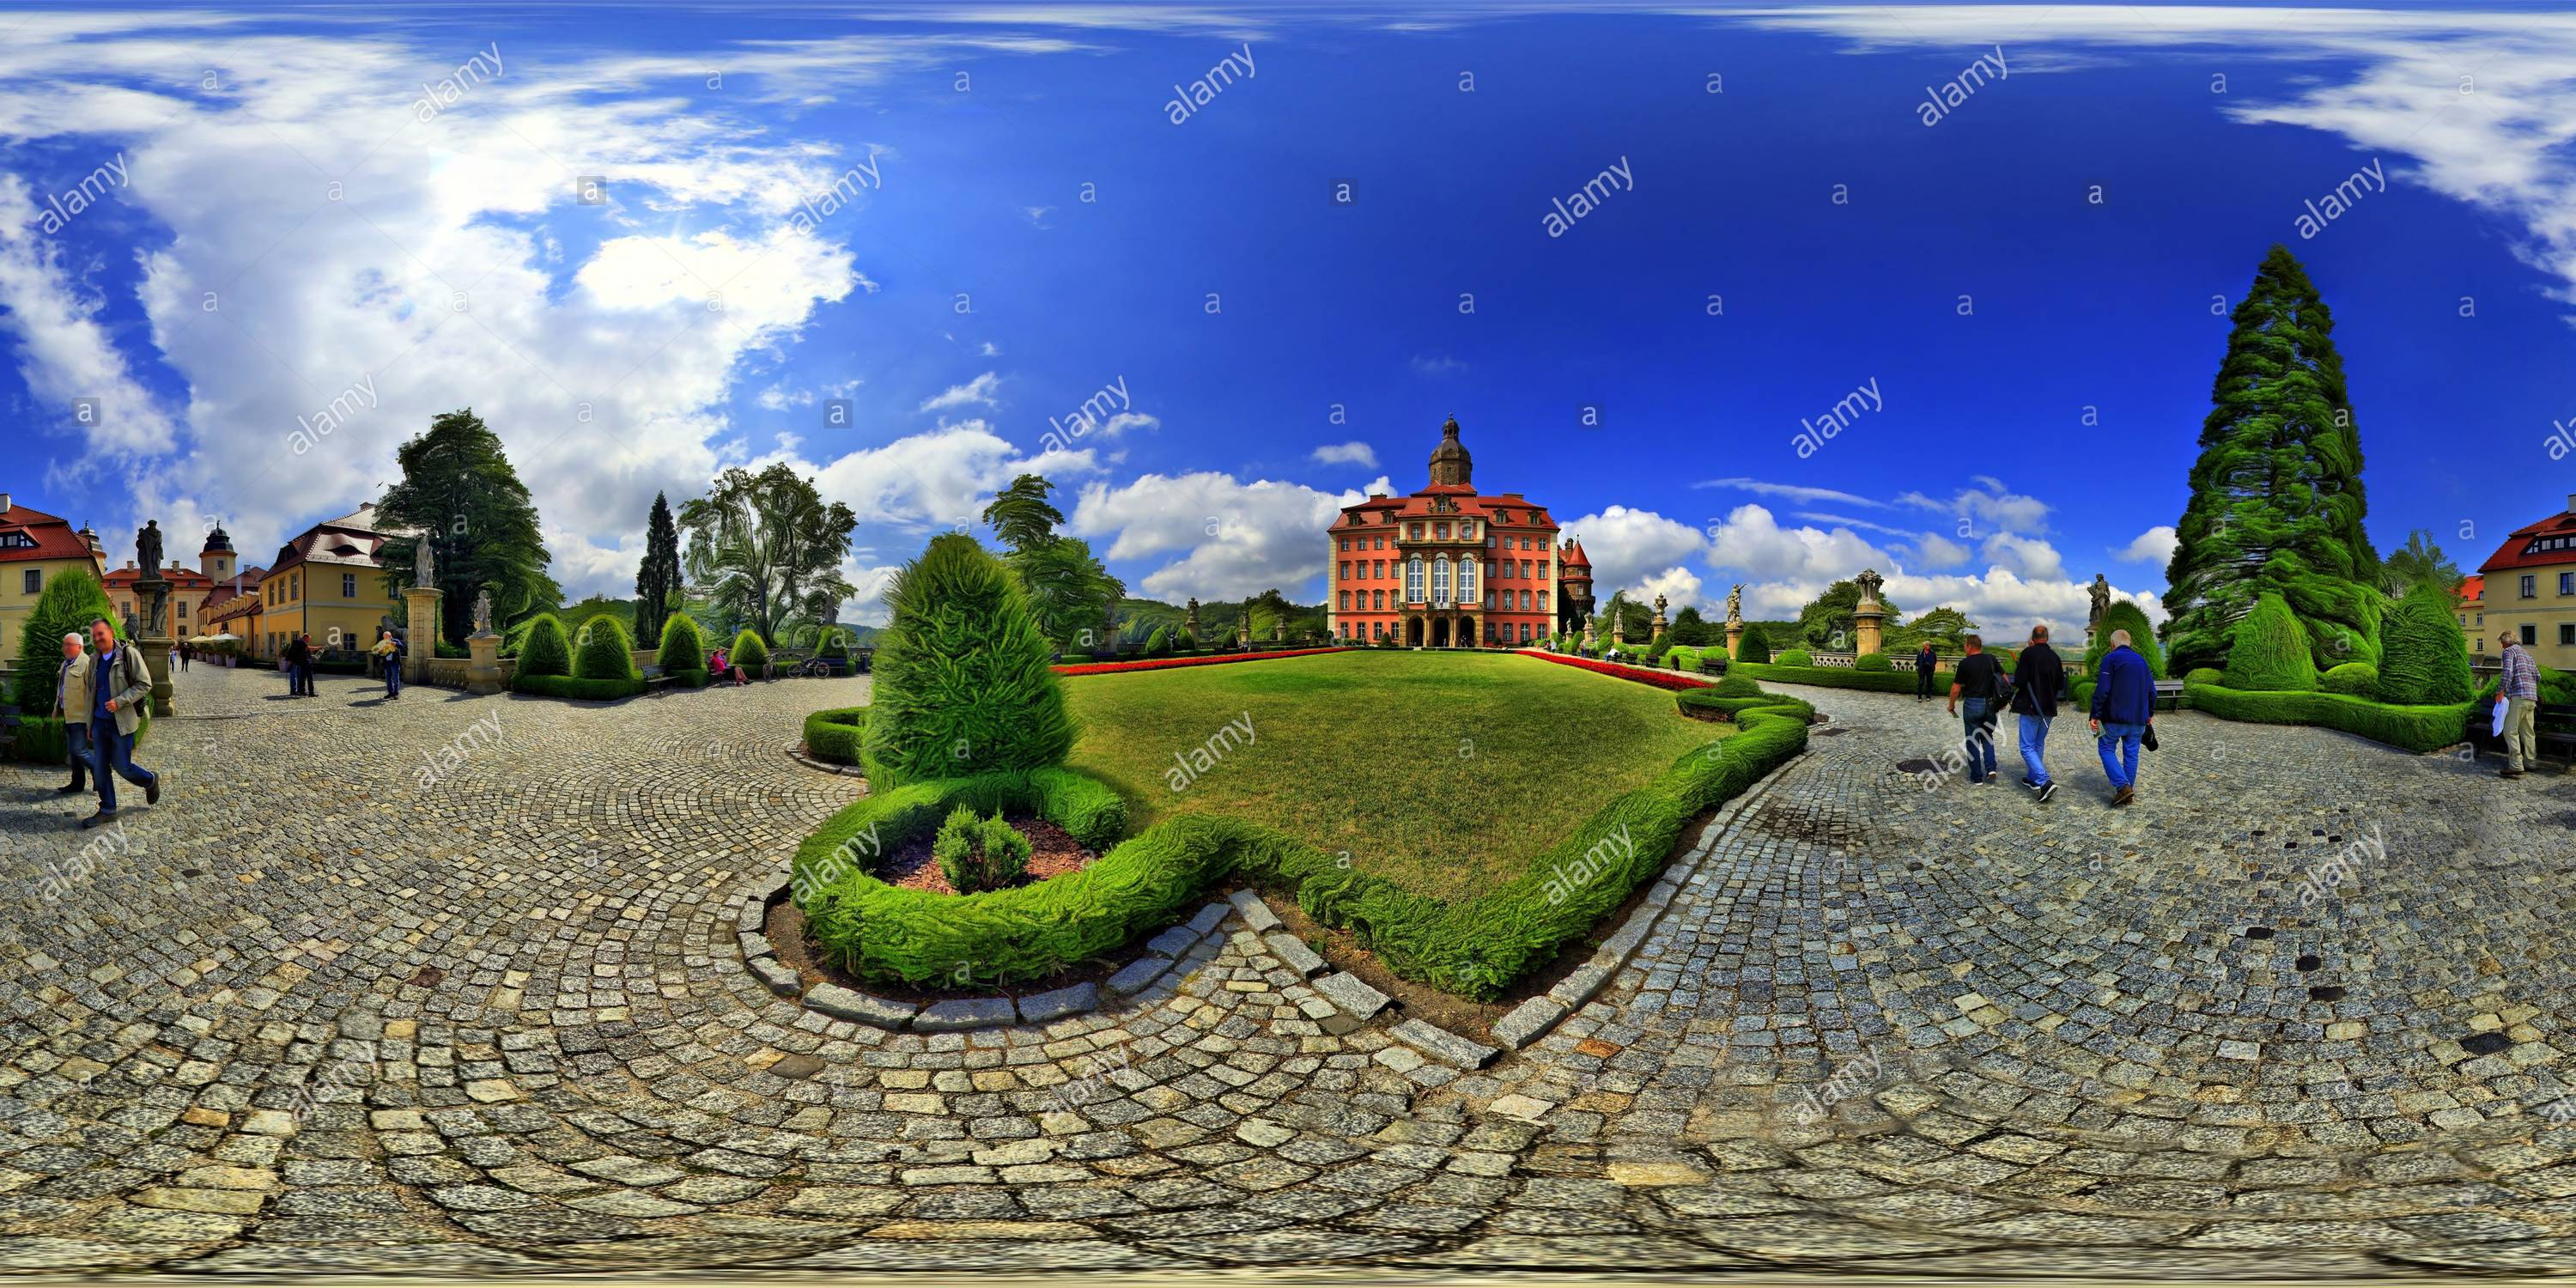 Le Château de Książ - East Side Photo Stock